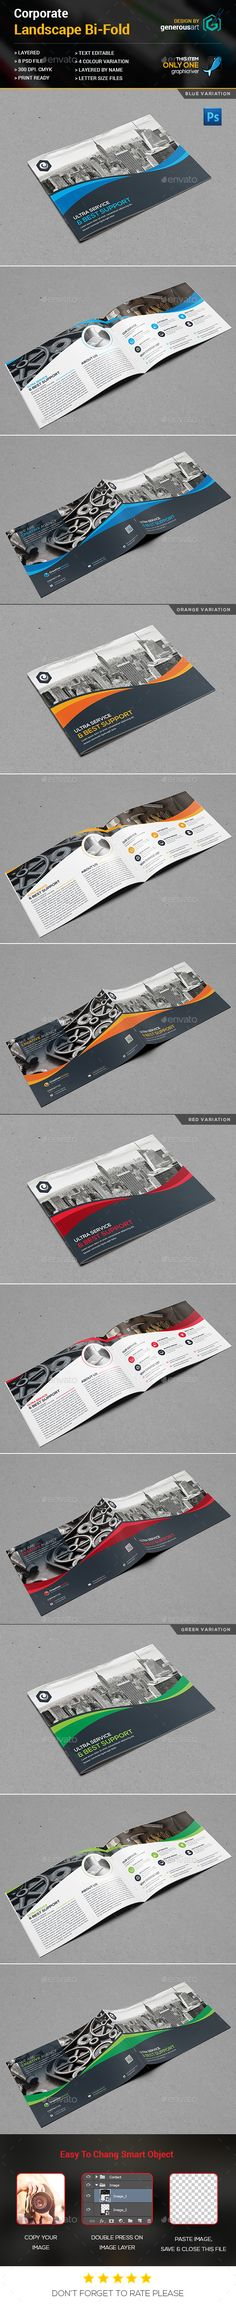 Landscape Bi-Fold Brochure Template PSD. Download here: https://graphicriver.net/item/landscape-bifold-brochure/17026534?ref=ksioks